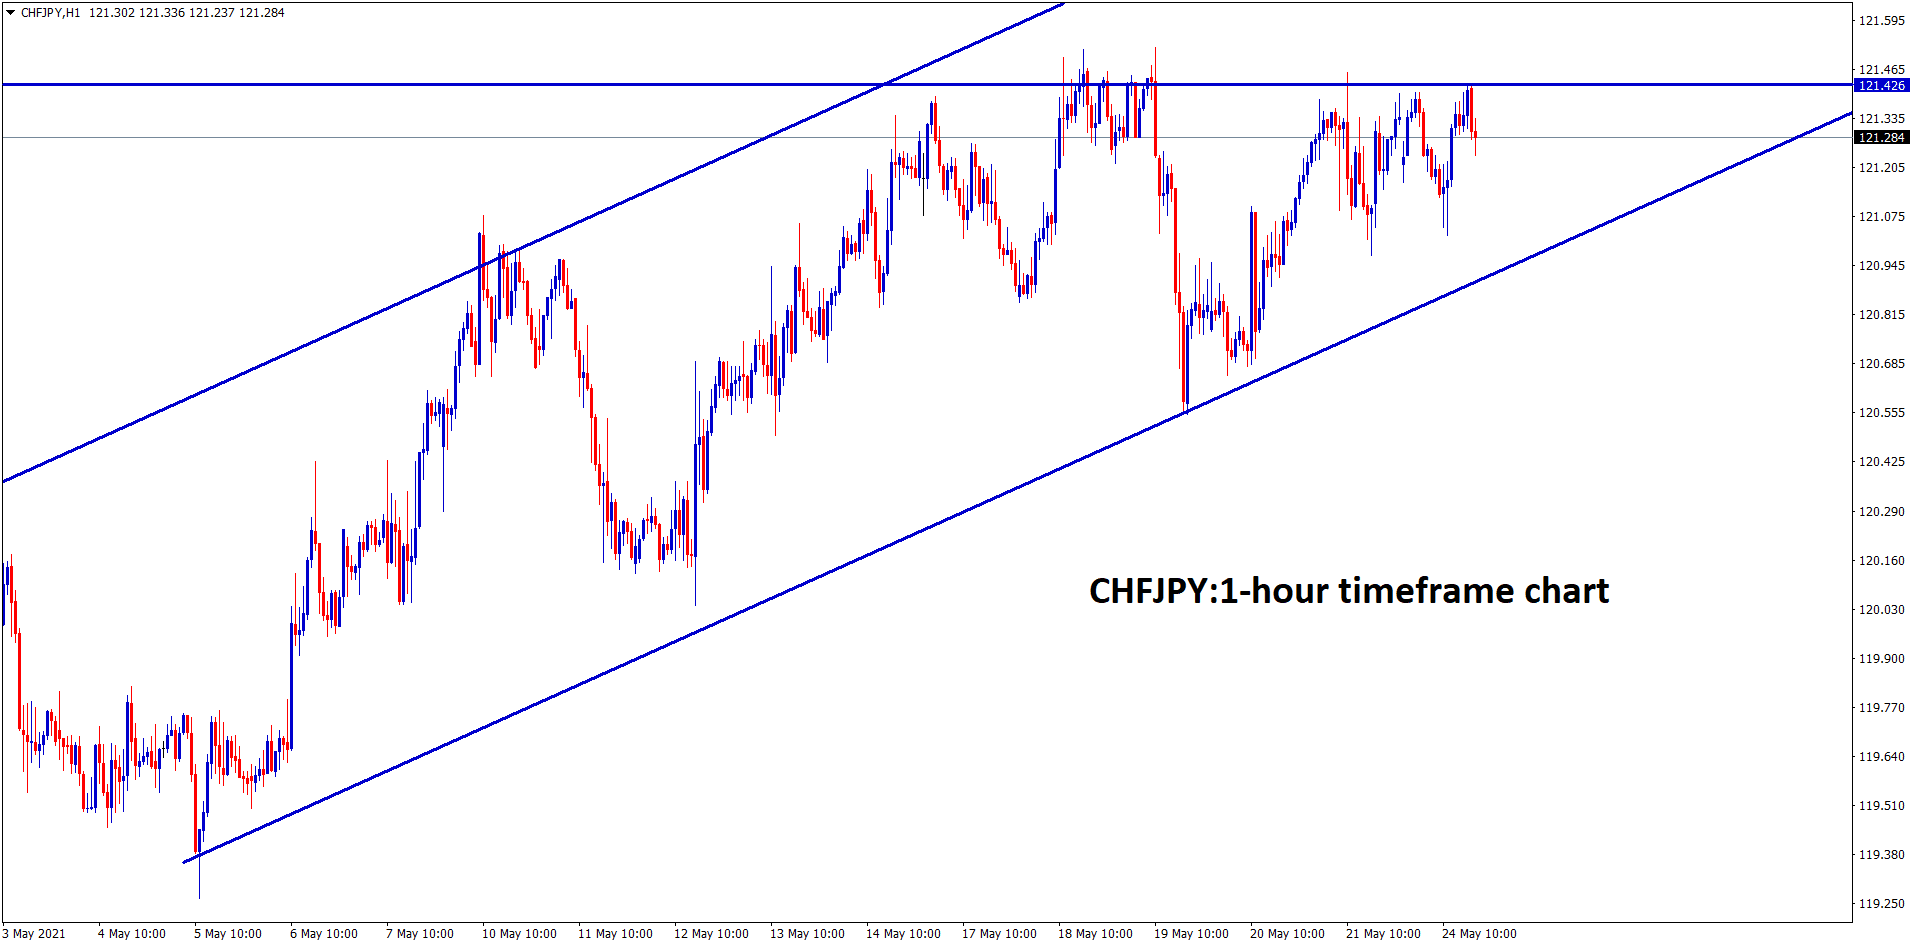 CHFJPY formed an Ascending Triangle in 1 hour timeframe